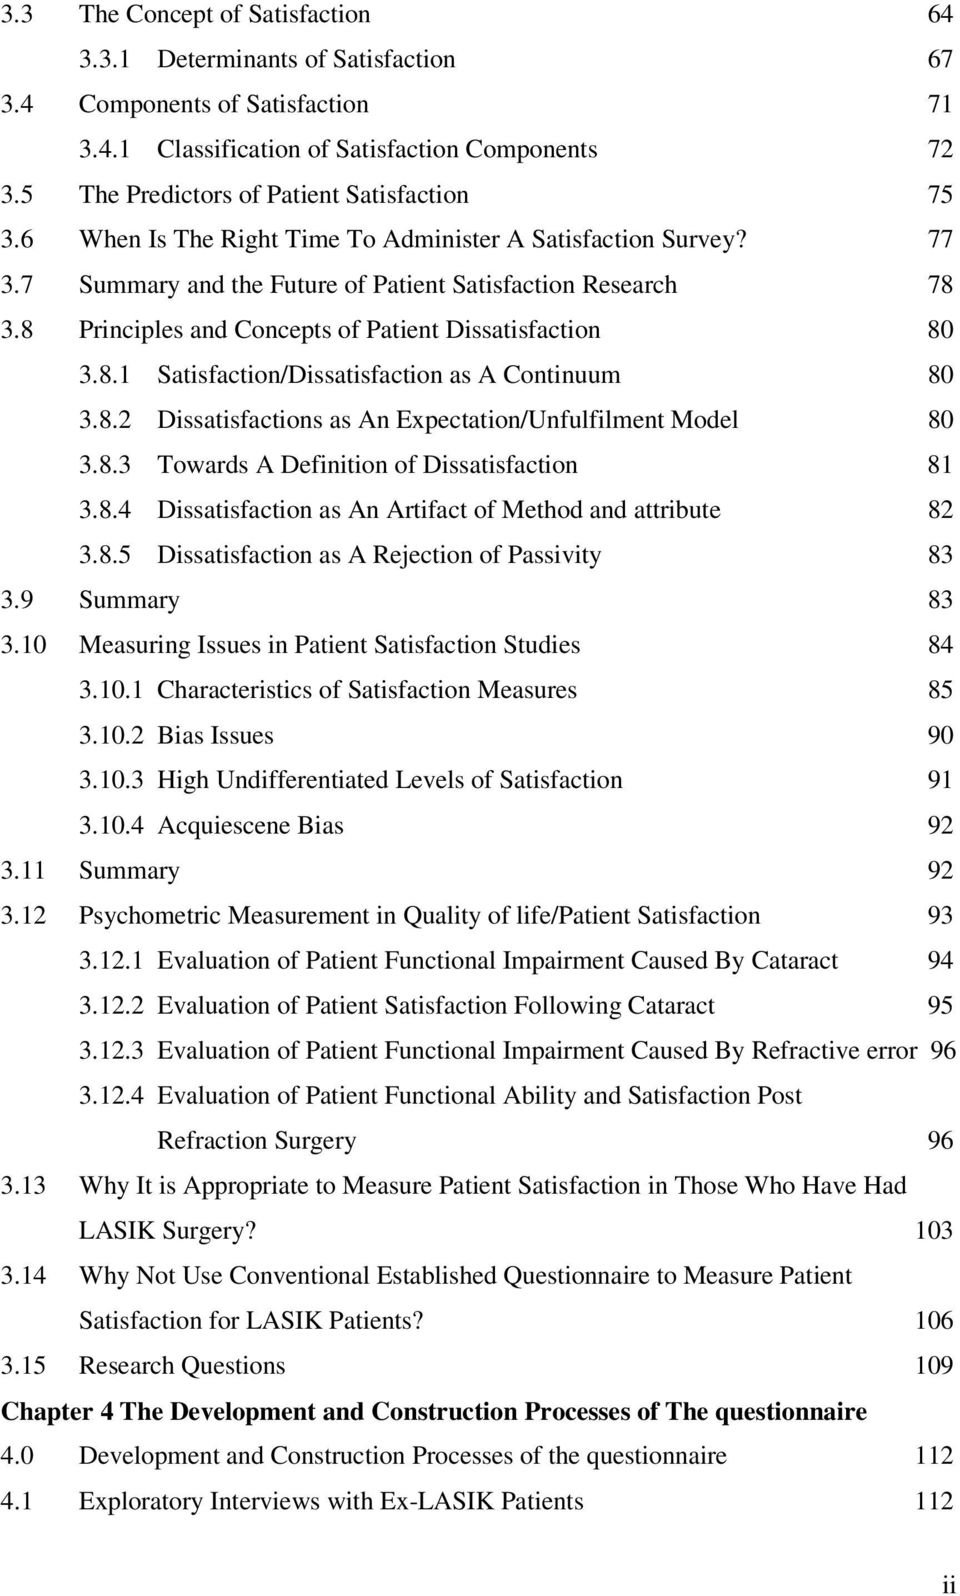 8 Principles and Concepts of Patient Dissatisfaction 80 3.8.1 Satisfaction/Dissatisfaction as A Continuum 80 3.8.2 Dissatisfactions as An Expectation/Unfulfilment Model 80 3.8.3 Towards A Definition of Dissatisfaction 81 3.